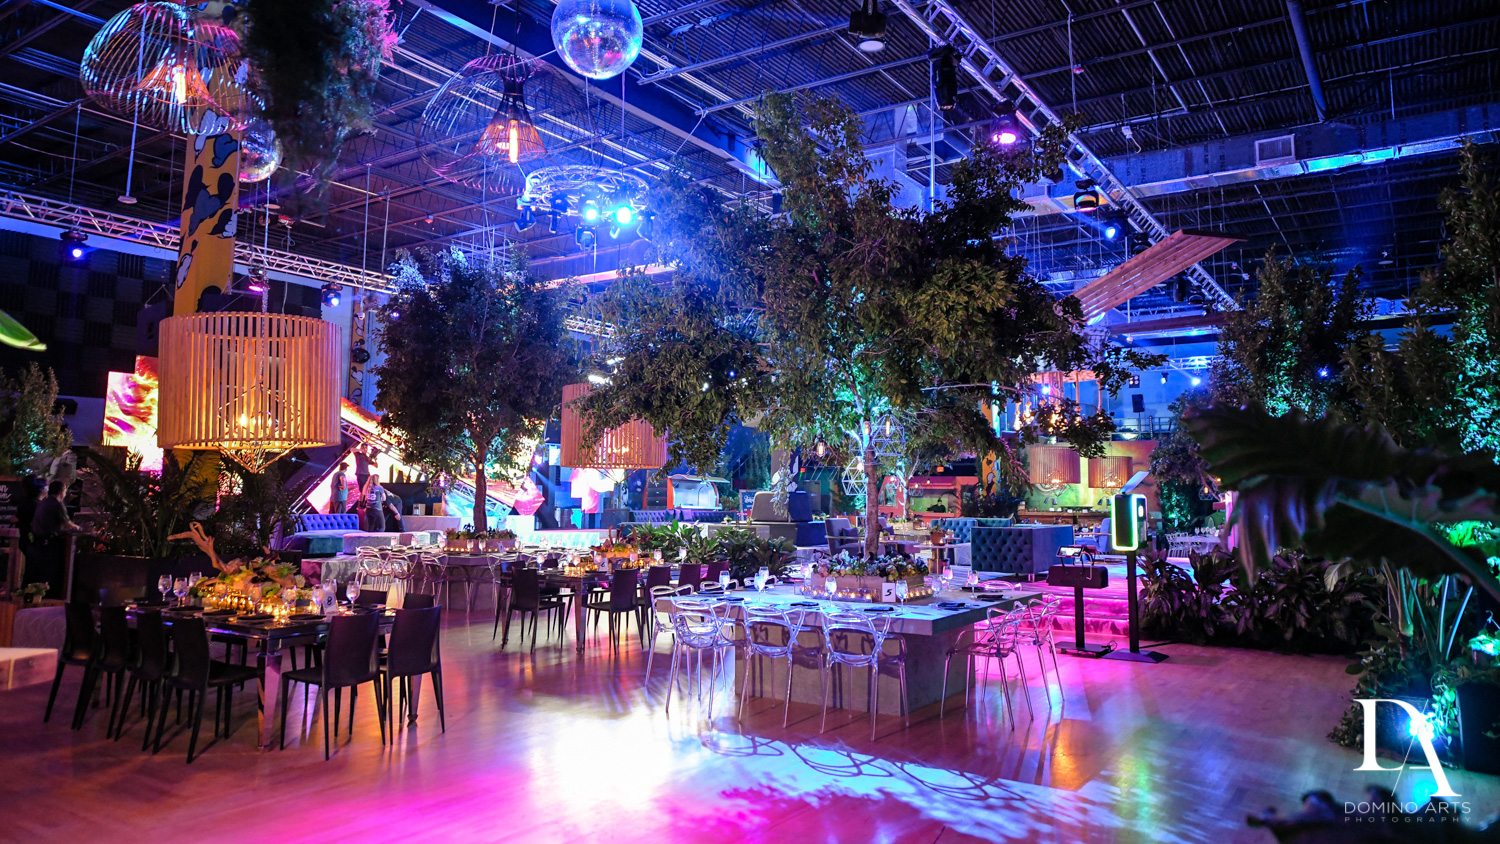 best mitzvah decor at Urban Graffiti BNai Mitzvah with celebrity Shaq at Xtreme Action Park by Domino Arts Photography